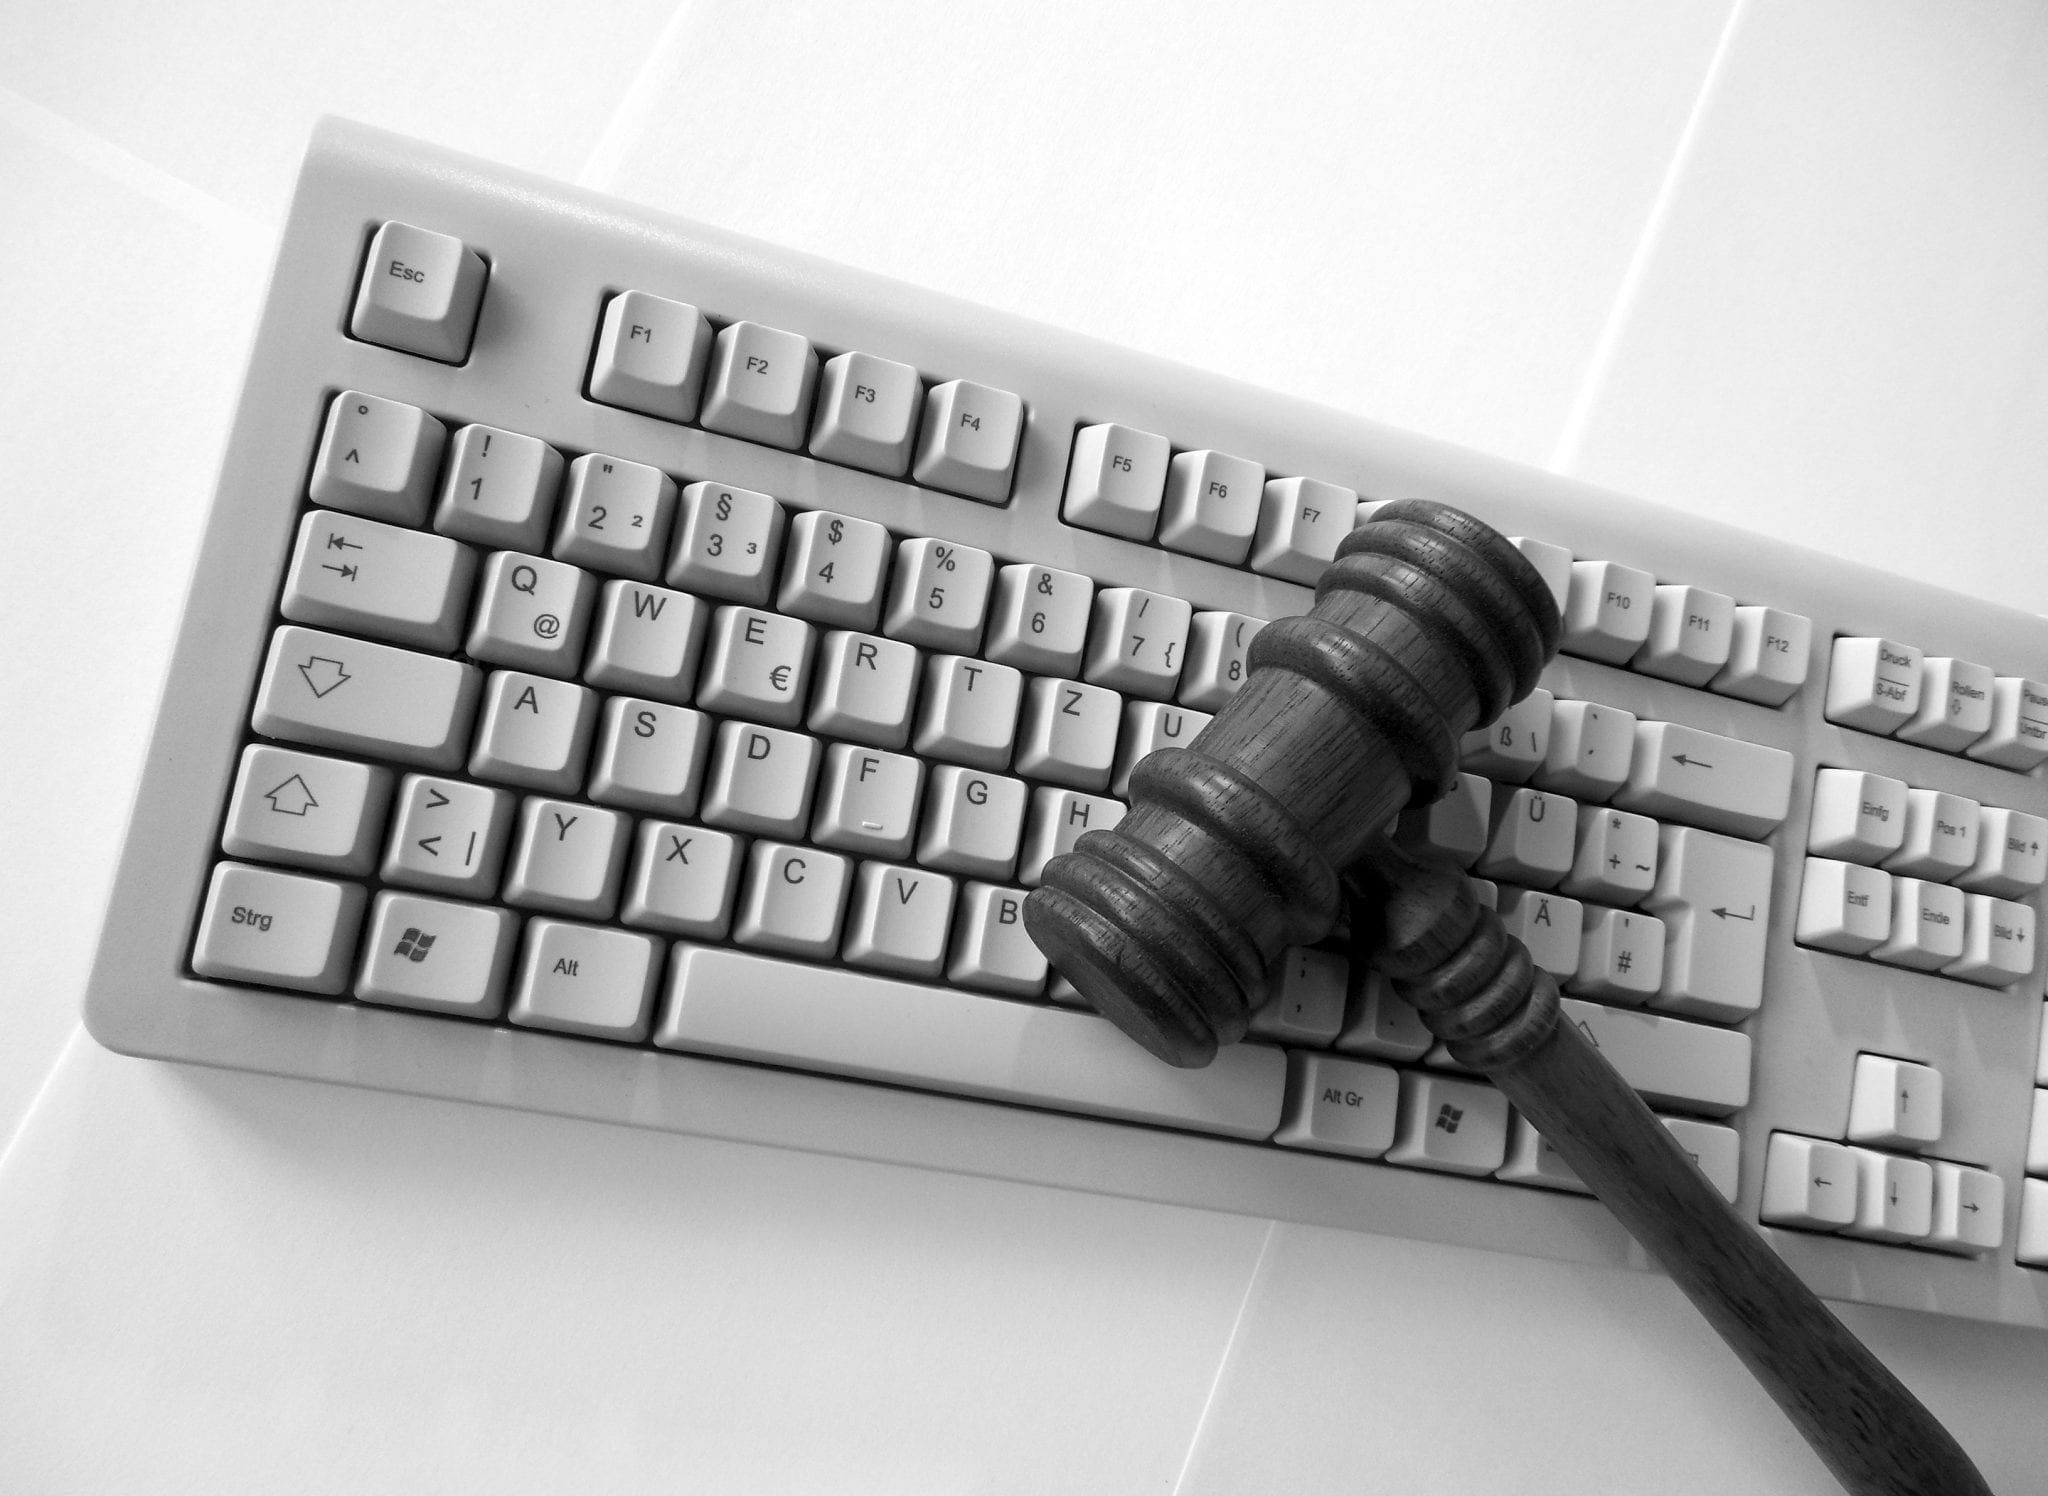 Keyboard and gavel; image via www.goodfreephotos.com CC0.